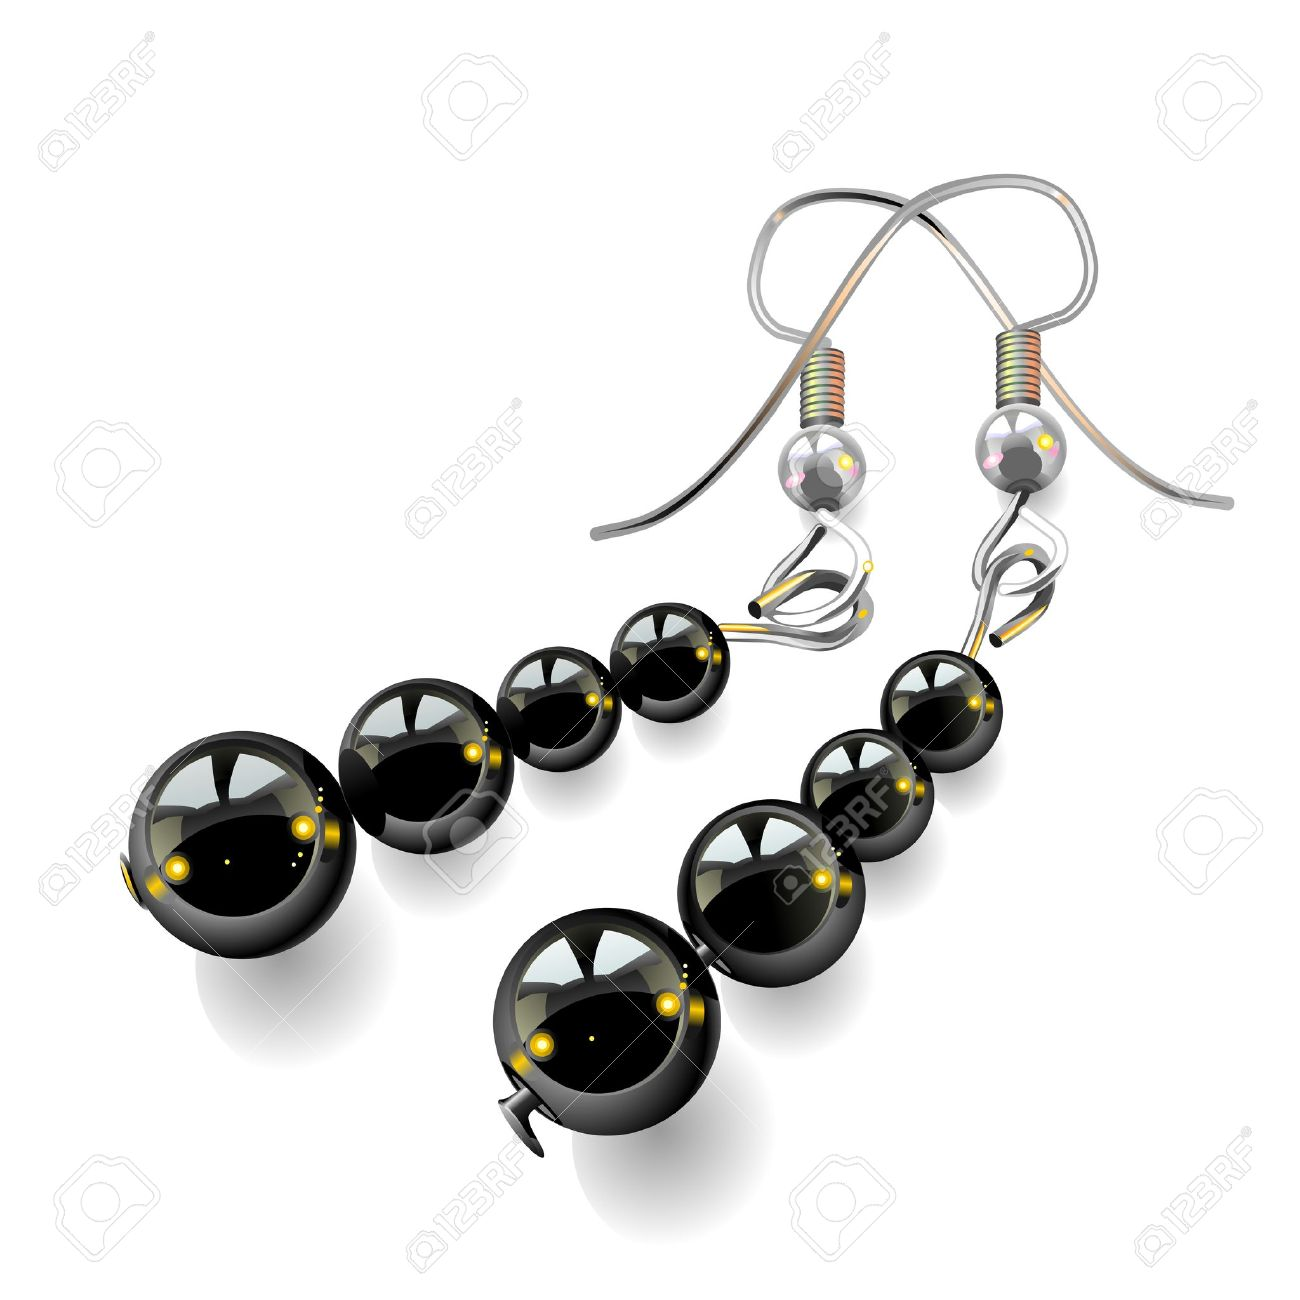 women's jewelry, earrings with black stones isolated on white background, vector, illustration, drawing Stock Vector - 8627494